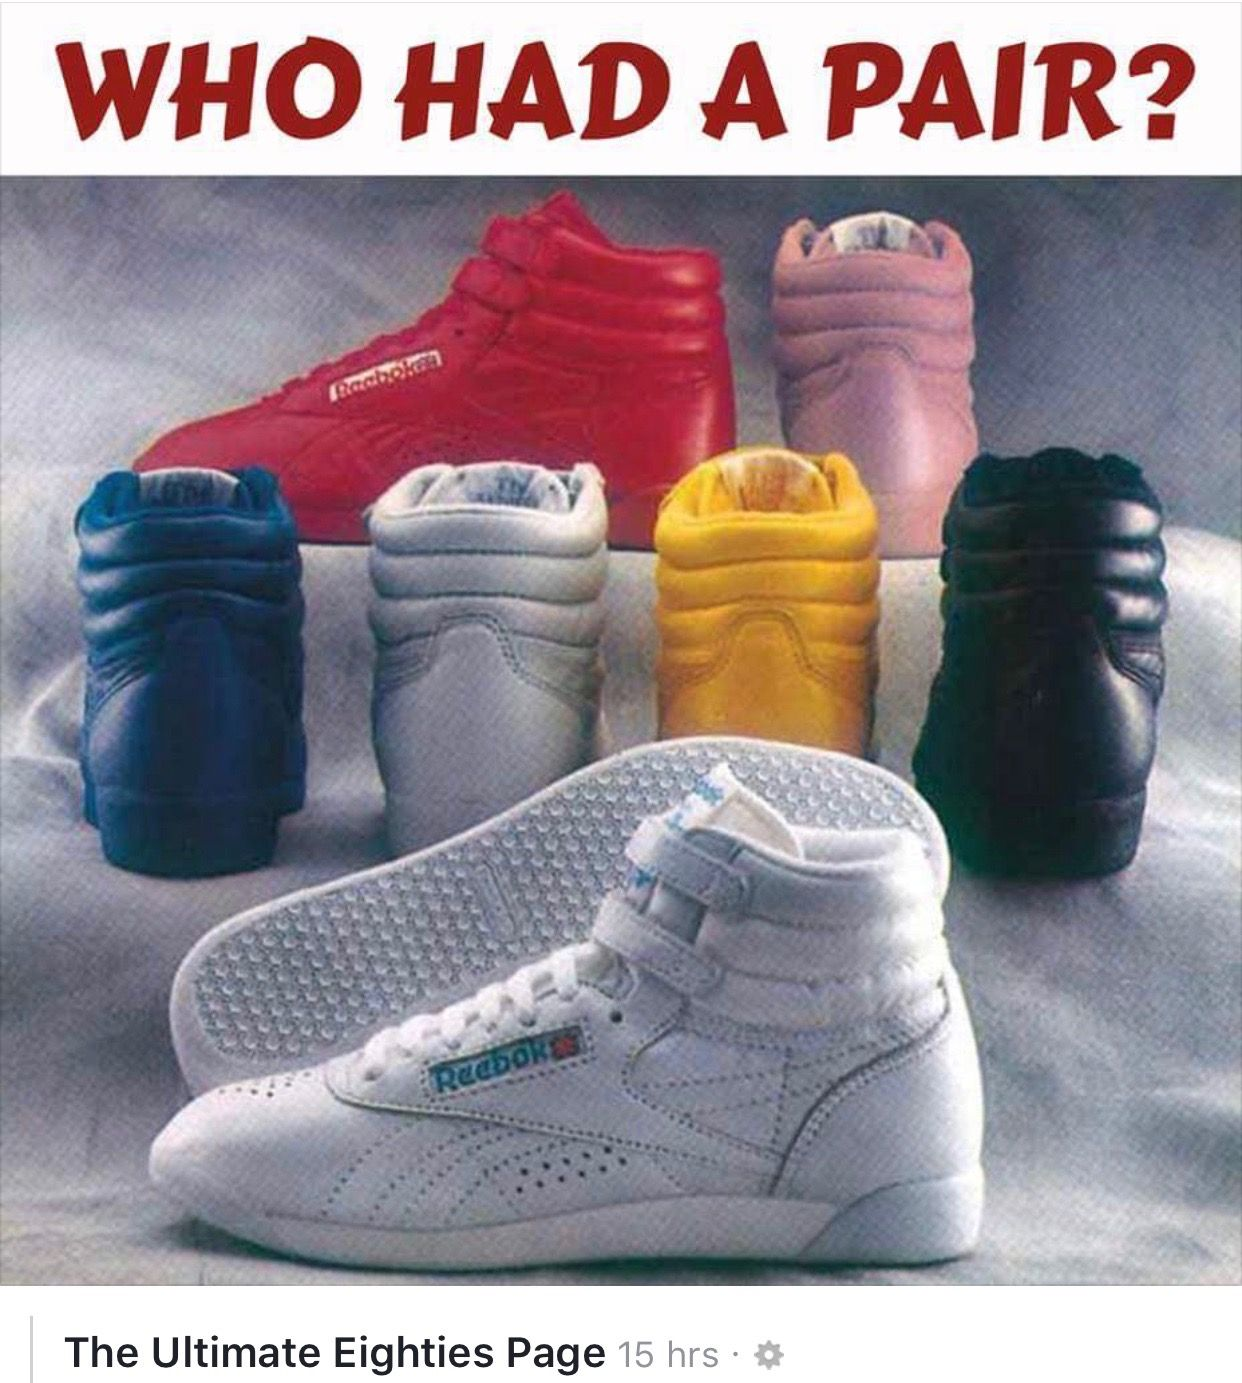 REMEMBER THE REEBOK WORLD BEST RUNNING SHOE FROM 1987? SNEAKER X9